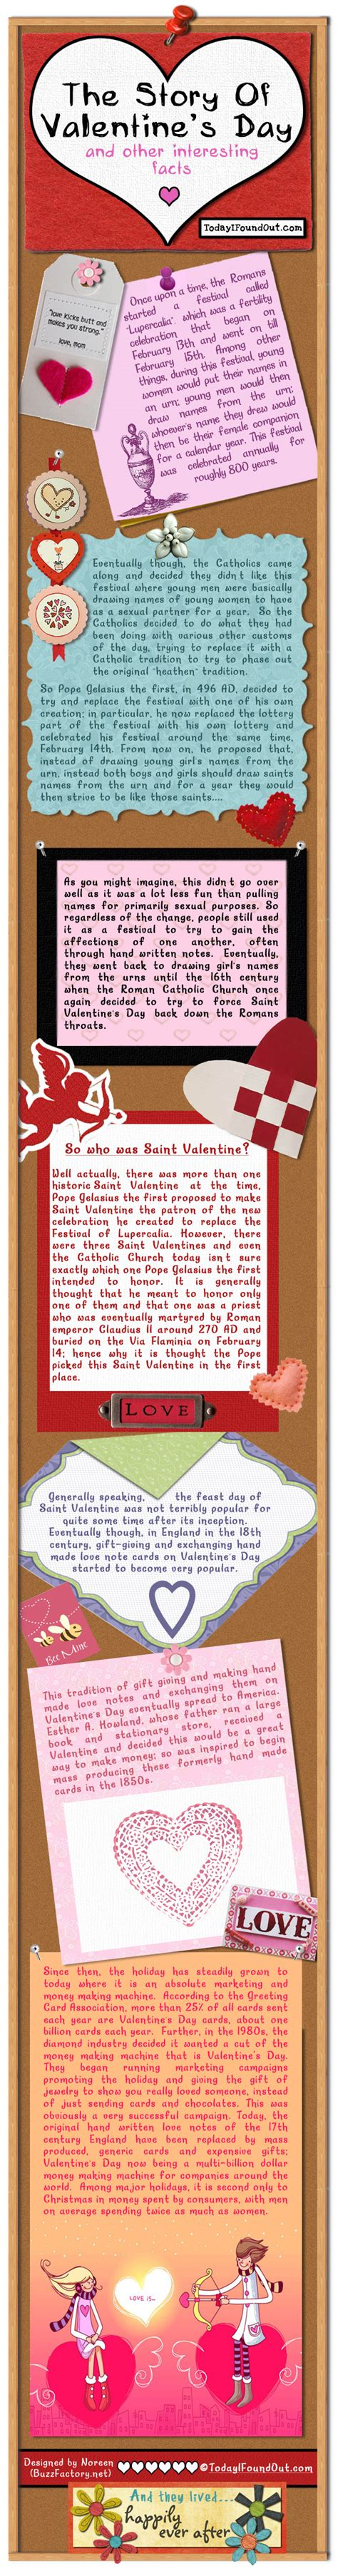 history valentines history of s day